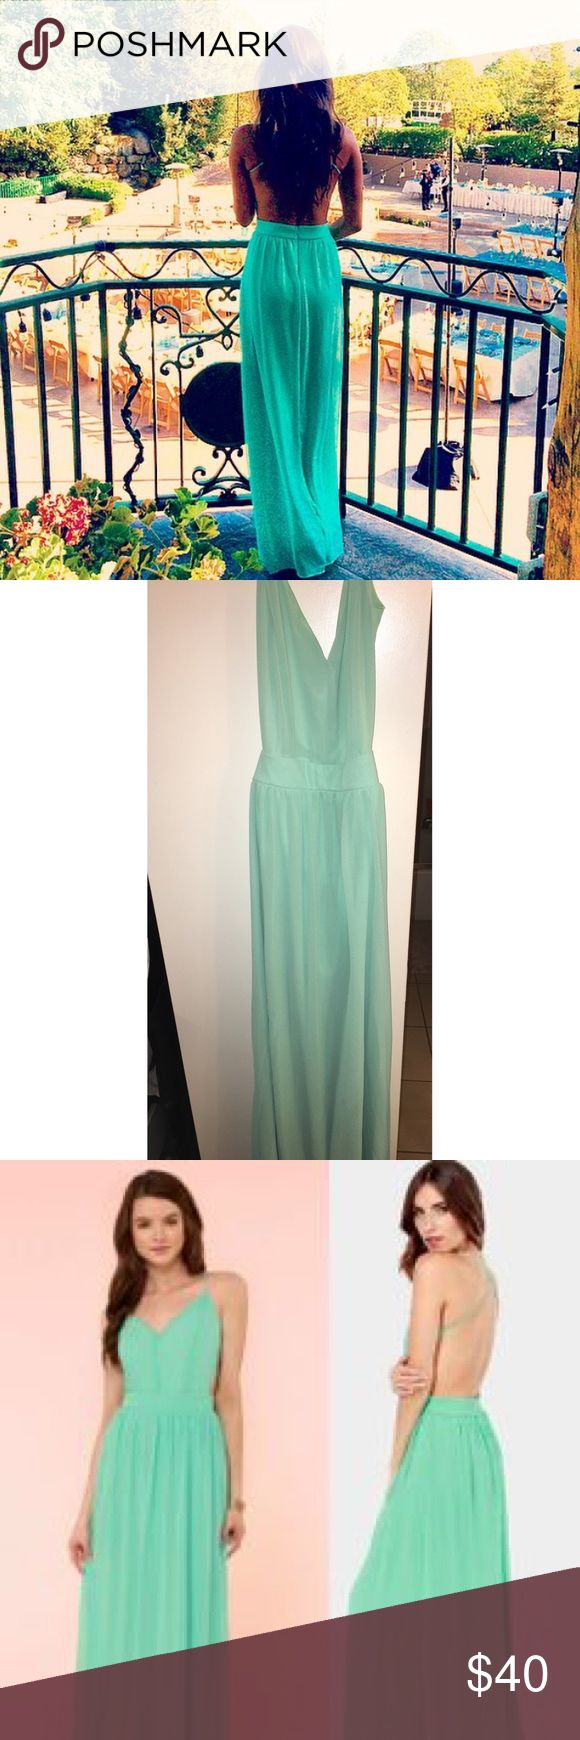 Lulus teal maxi dress 👗 Like New! I wore this dress one time! Low cut and strappy back - size XS - perfect for a bridesmaid dress or other special occasion / wedding. Lulu's Dresses Maxi